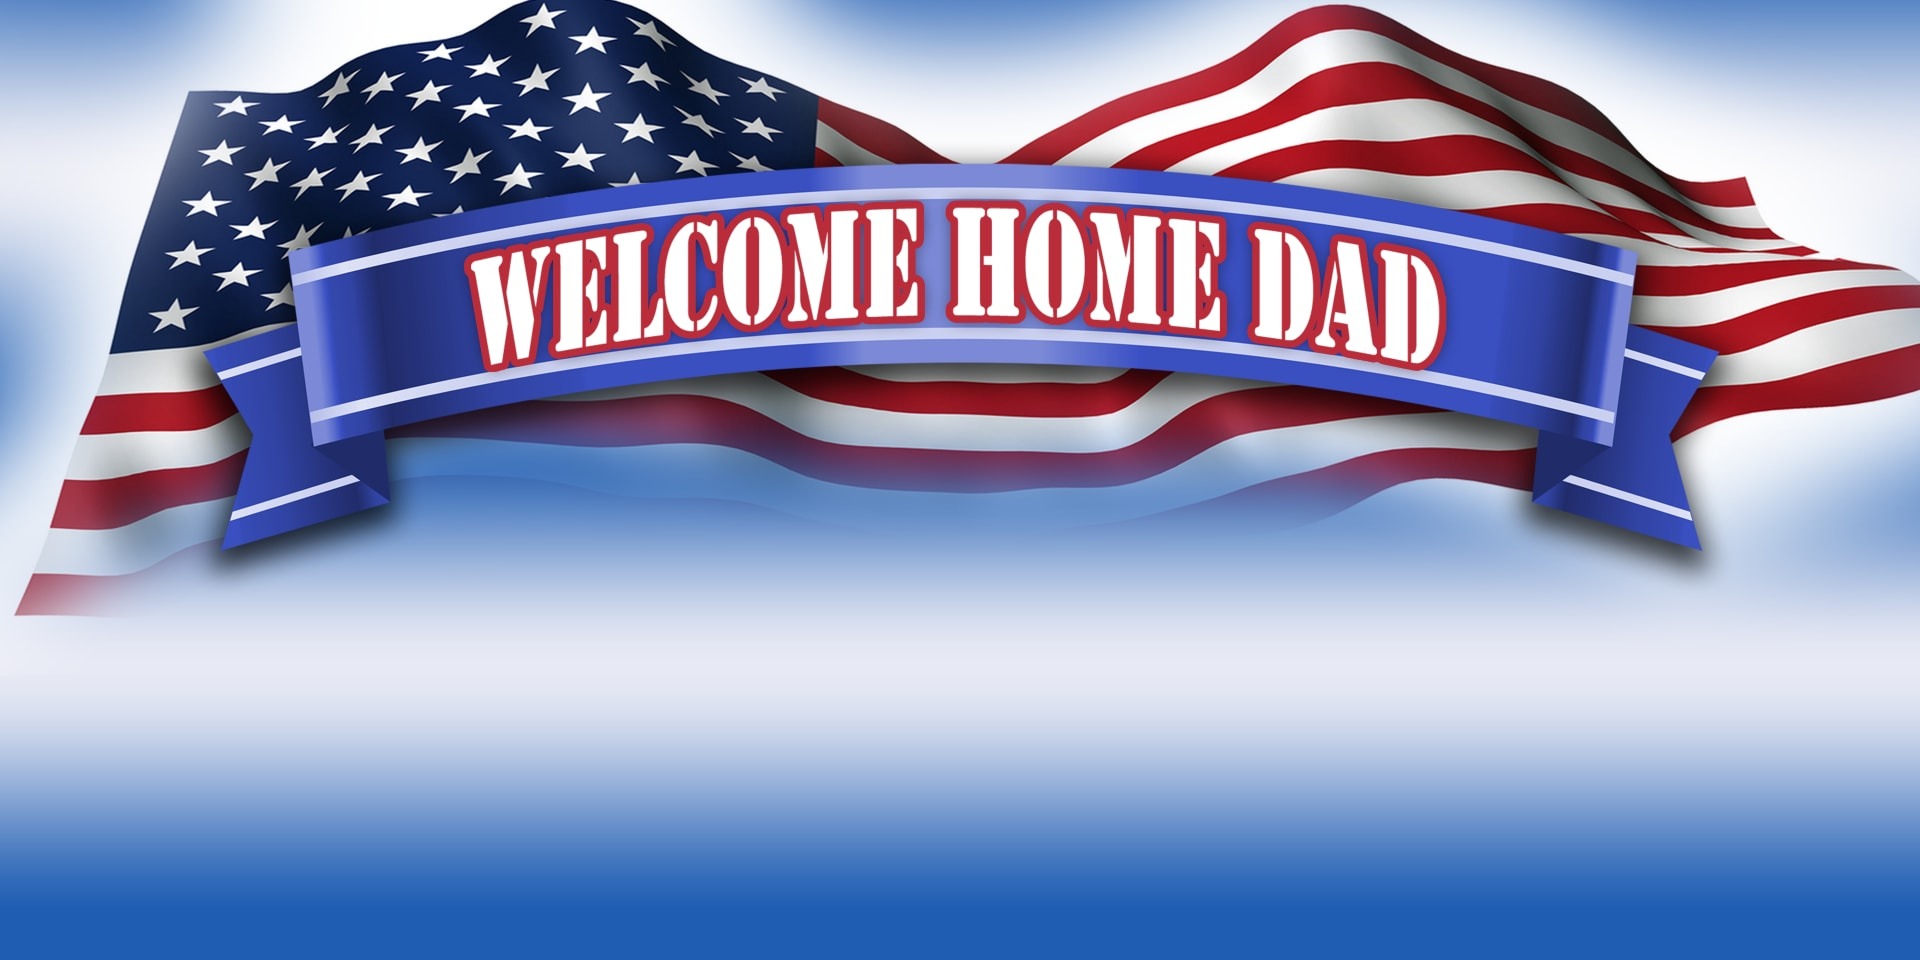 Military Banners Welcome Home Dad